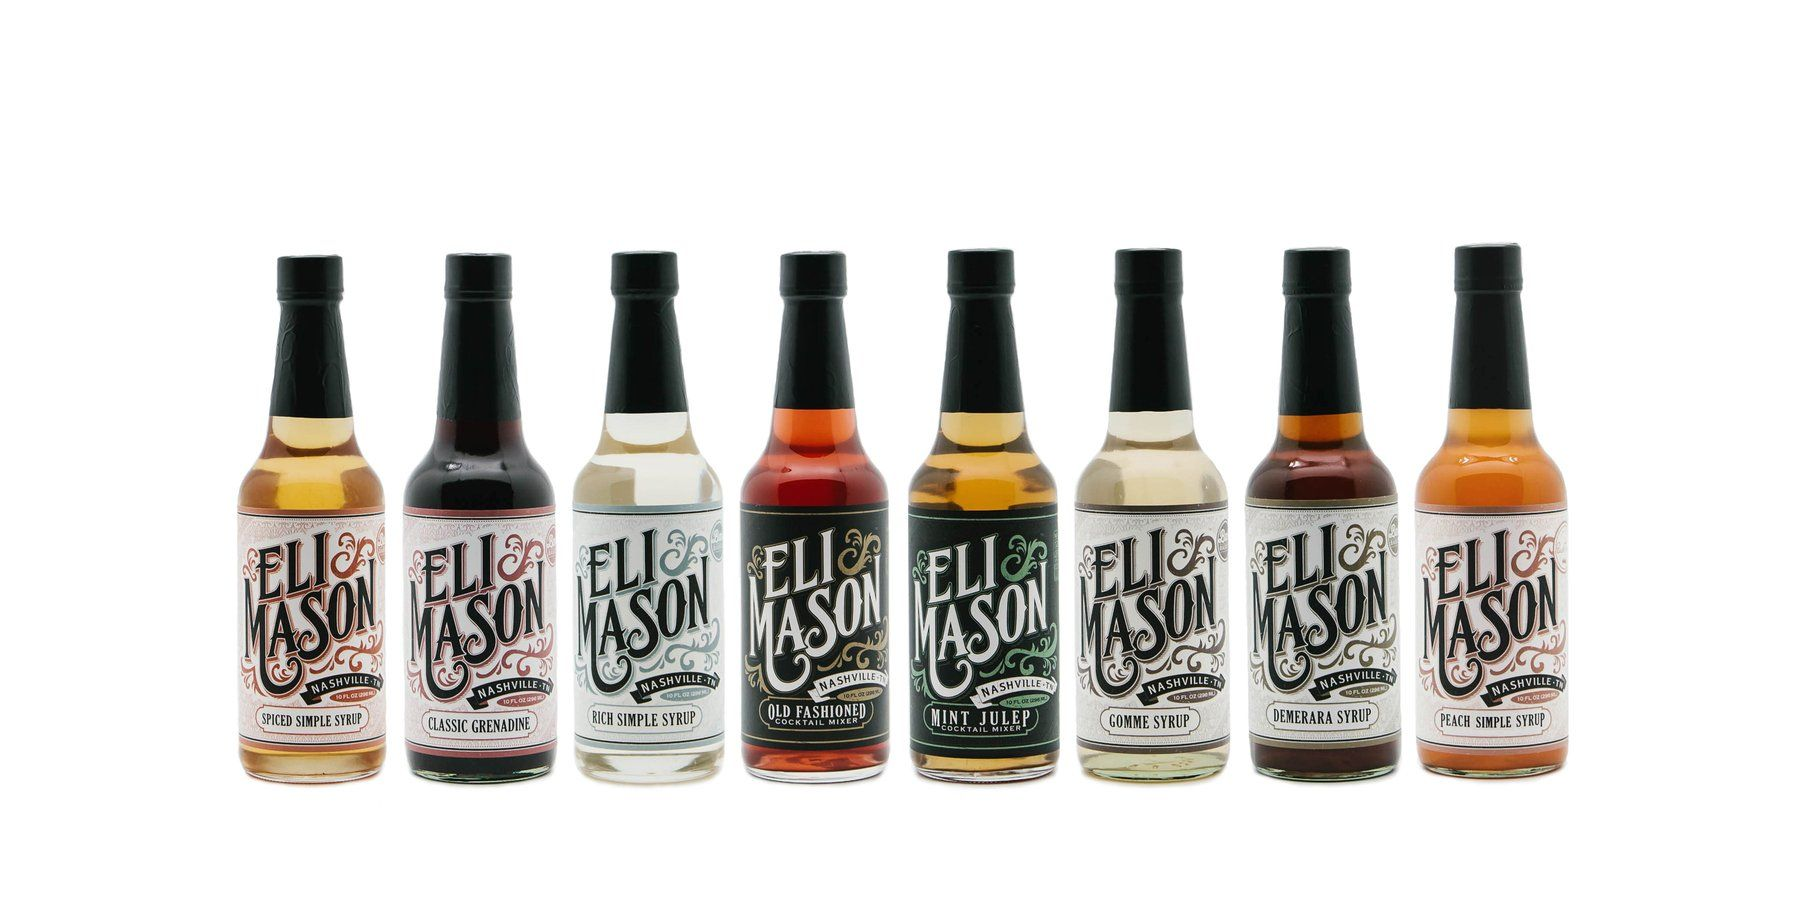 Eli Mason Cocktail Mixers Are Made With High Quality All Natural Ingredients In Nashville Tennessee Making Cocktails With Images Eli Mason Old Fashioned Cocktail Making